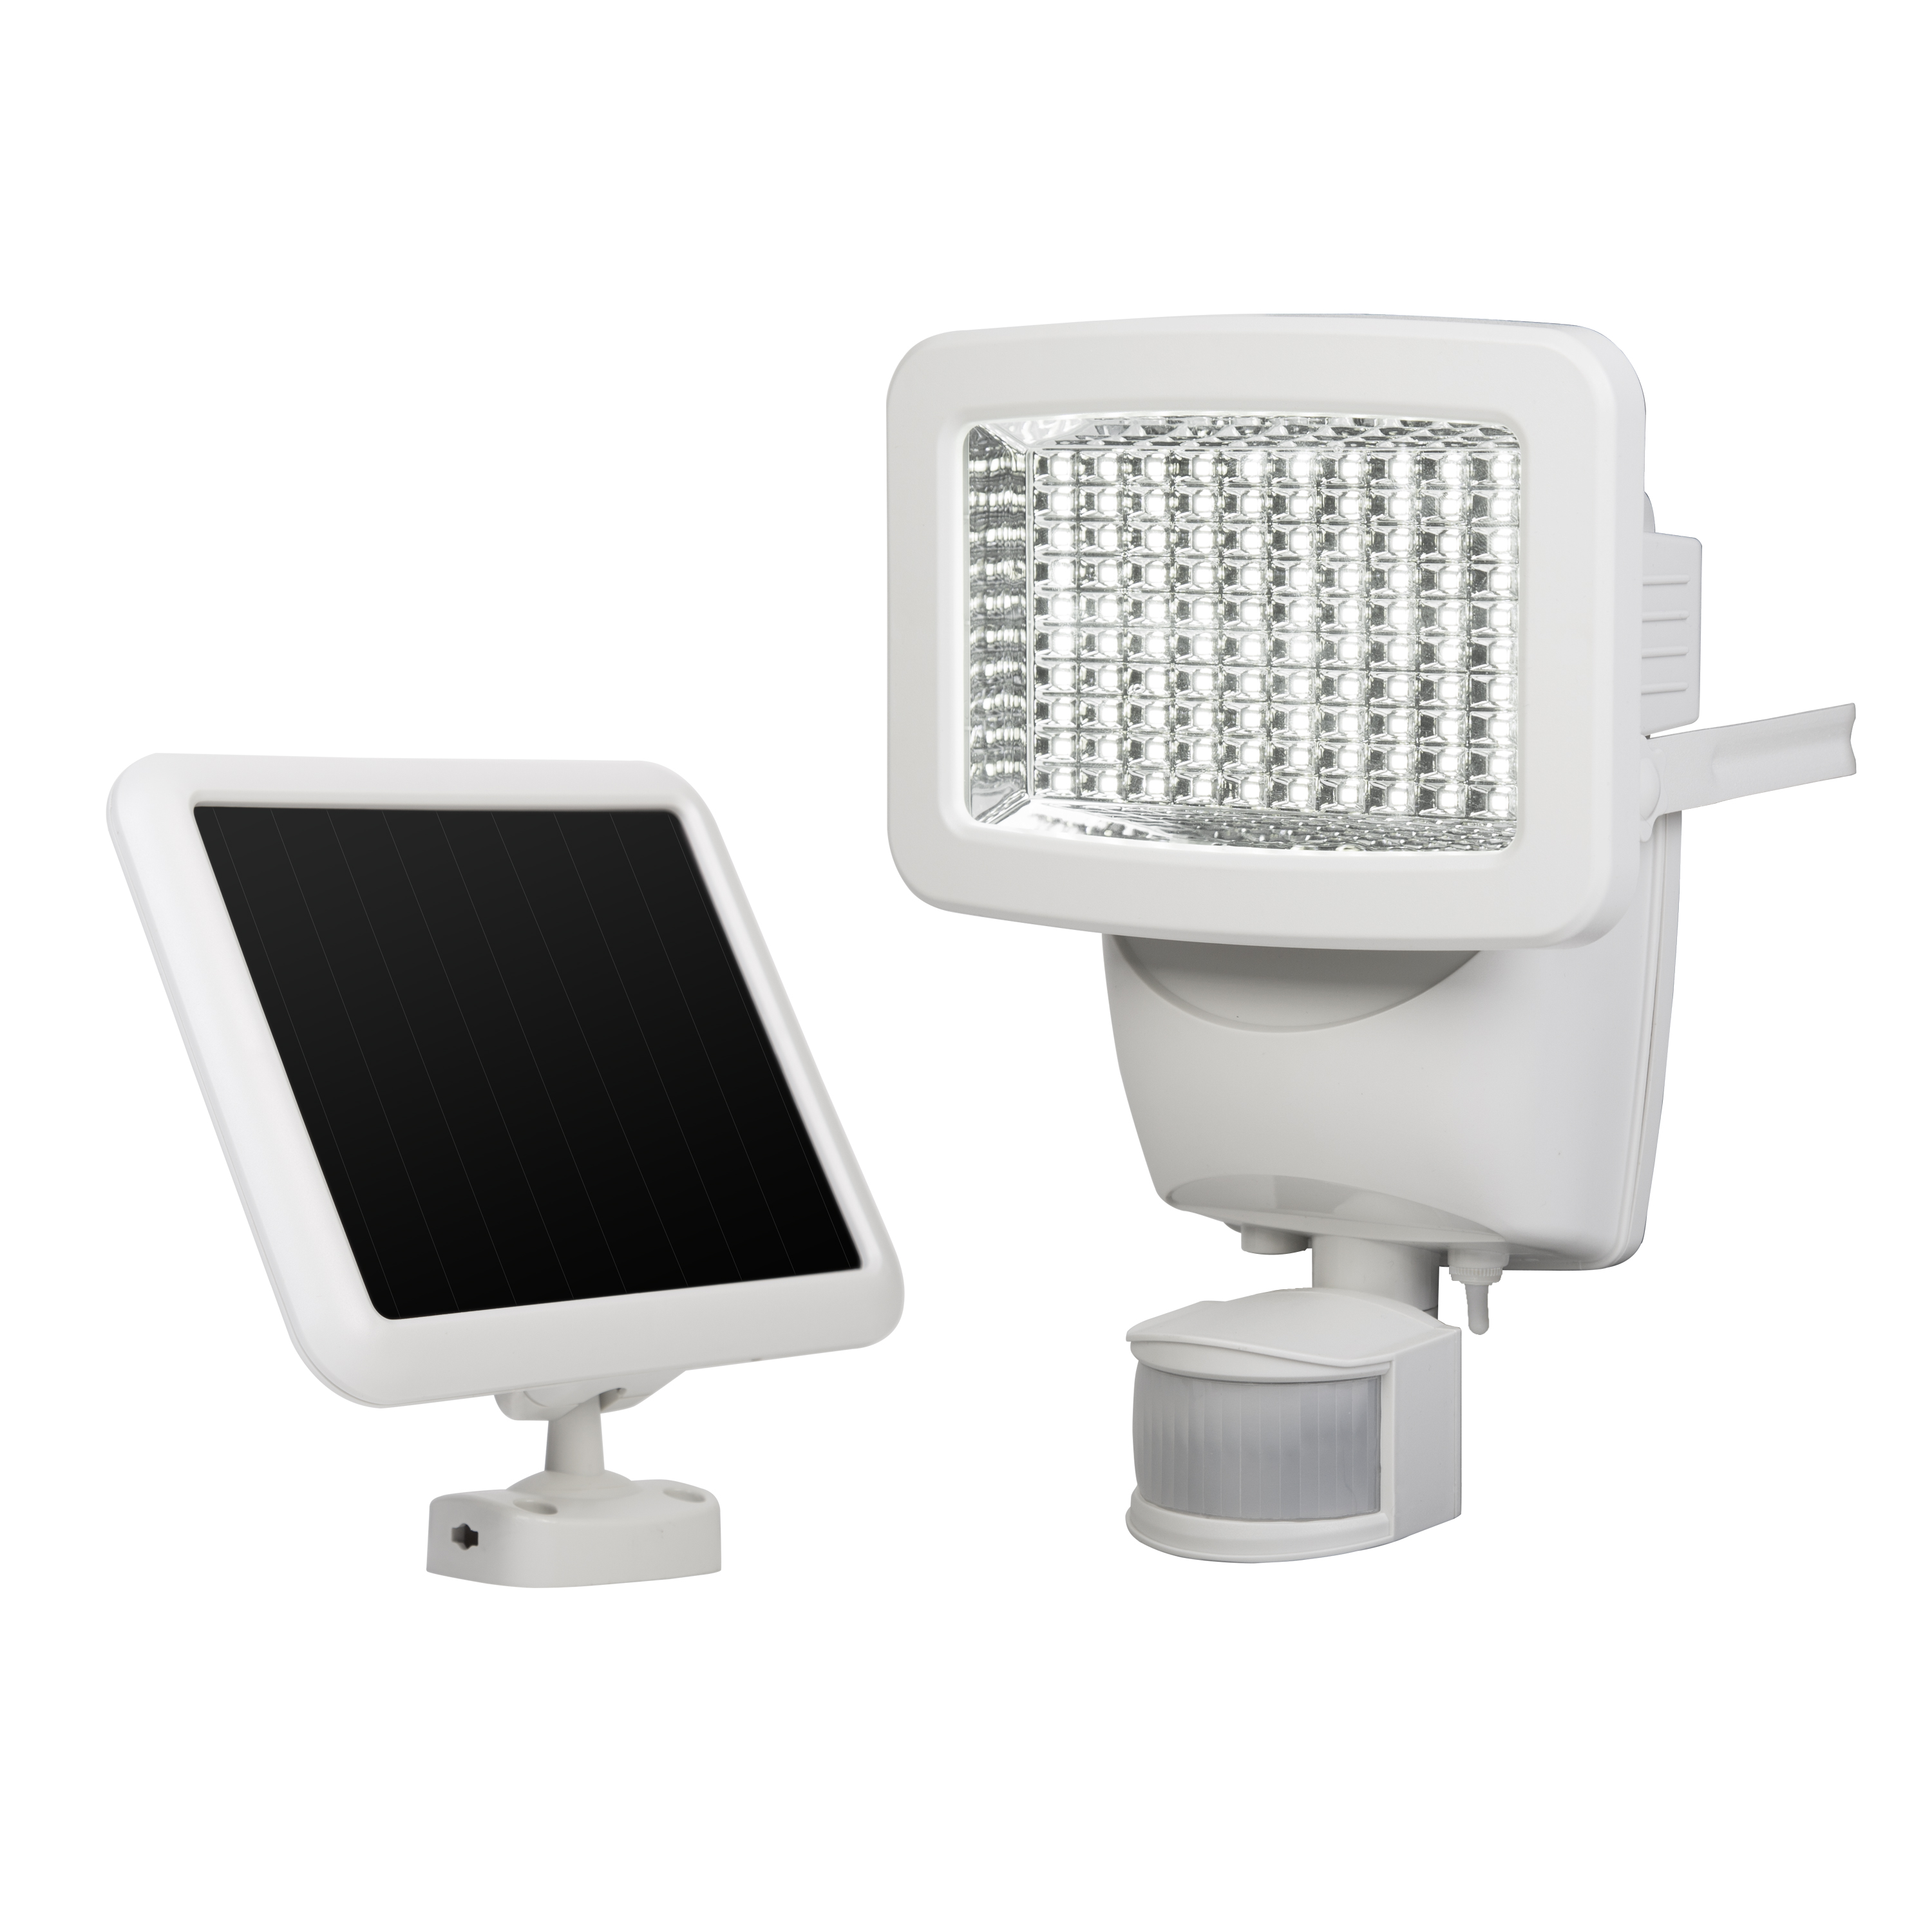 100 Led Solar Motion Light Sunforce Products Inc Flood Wiring Instructions Installing A Remote Detector